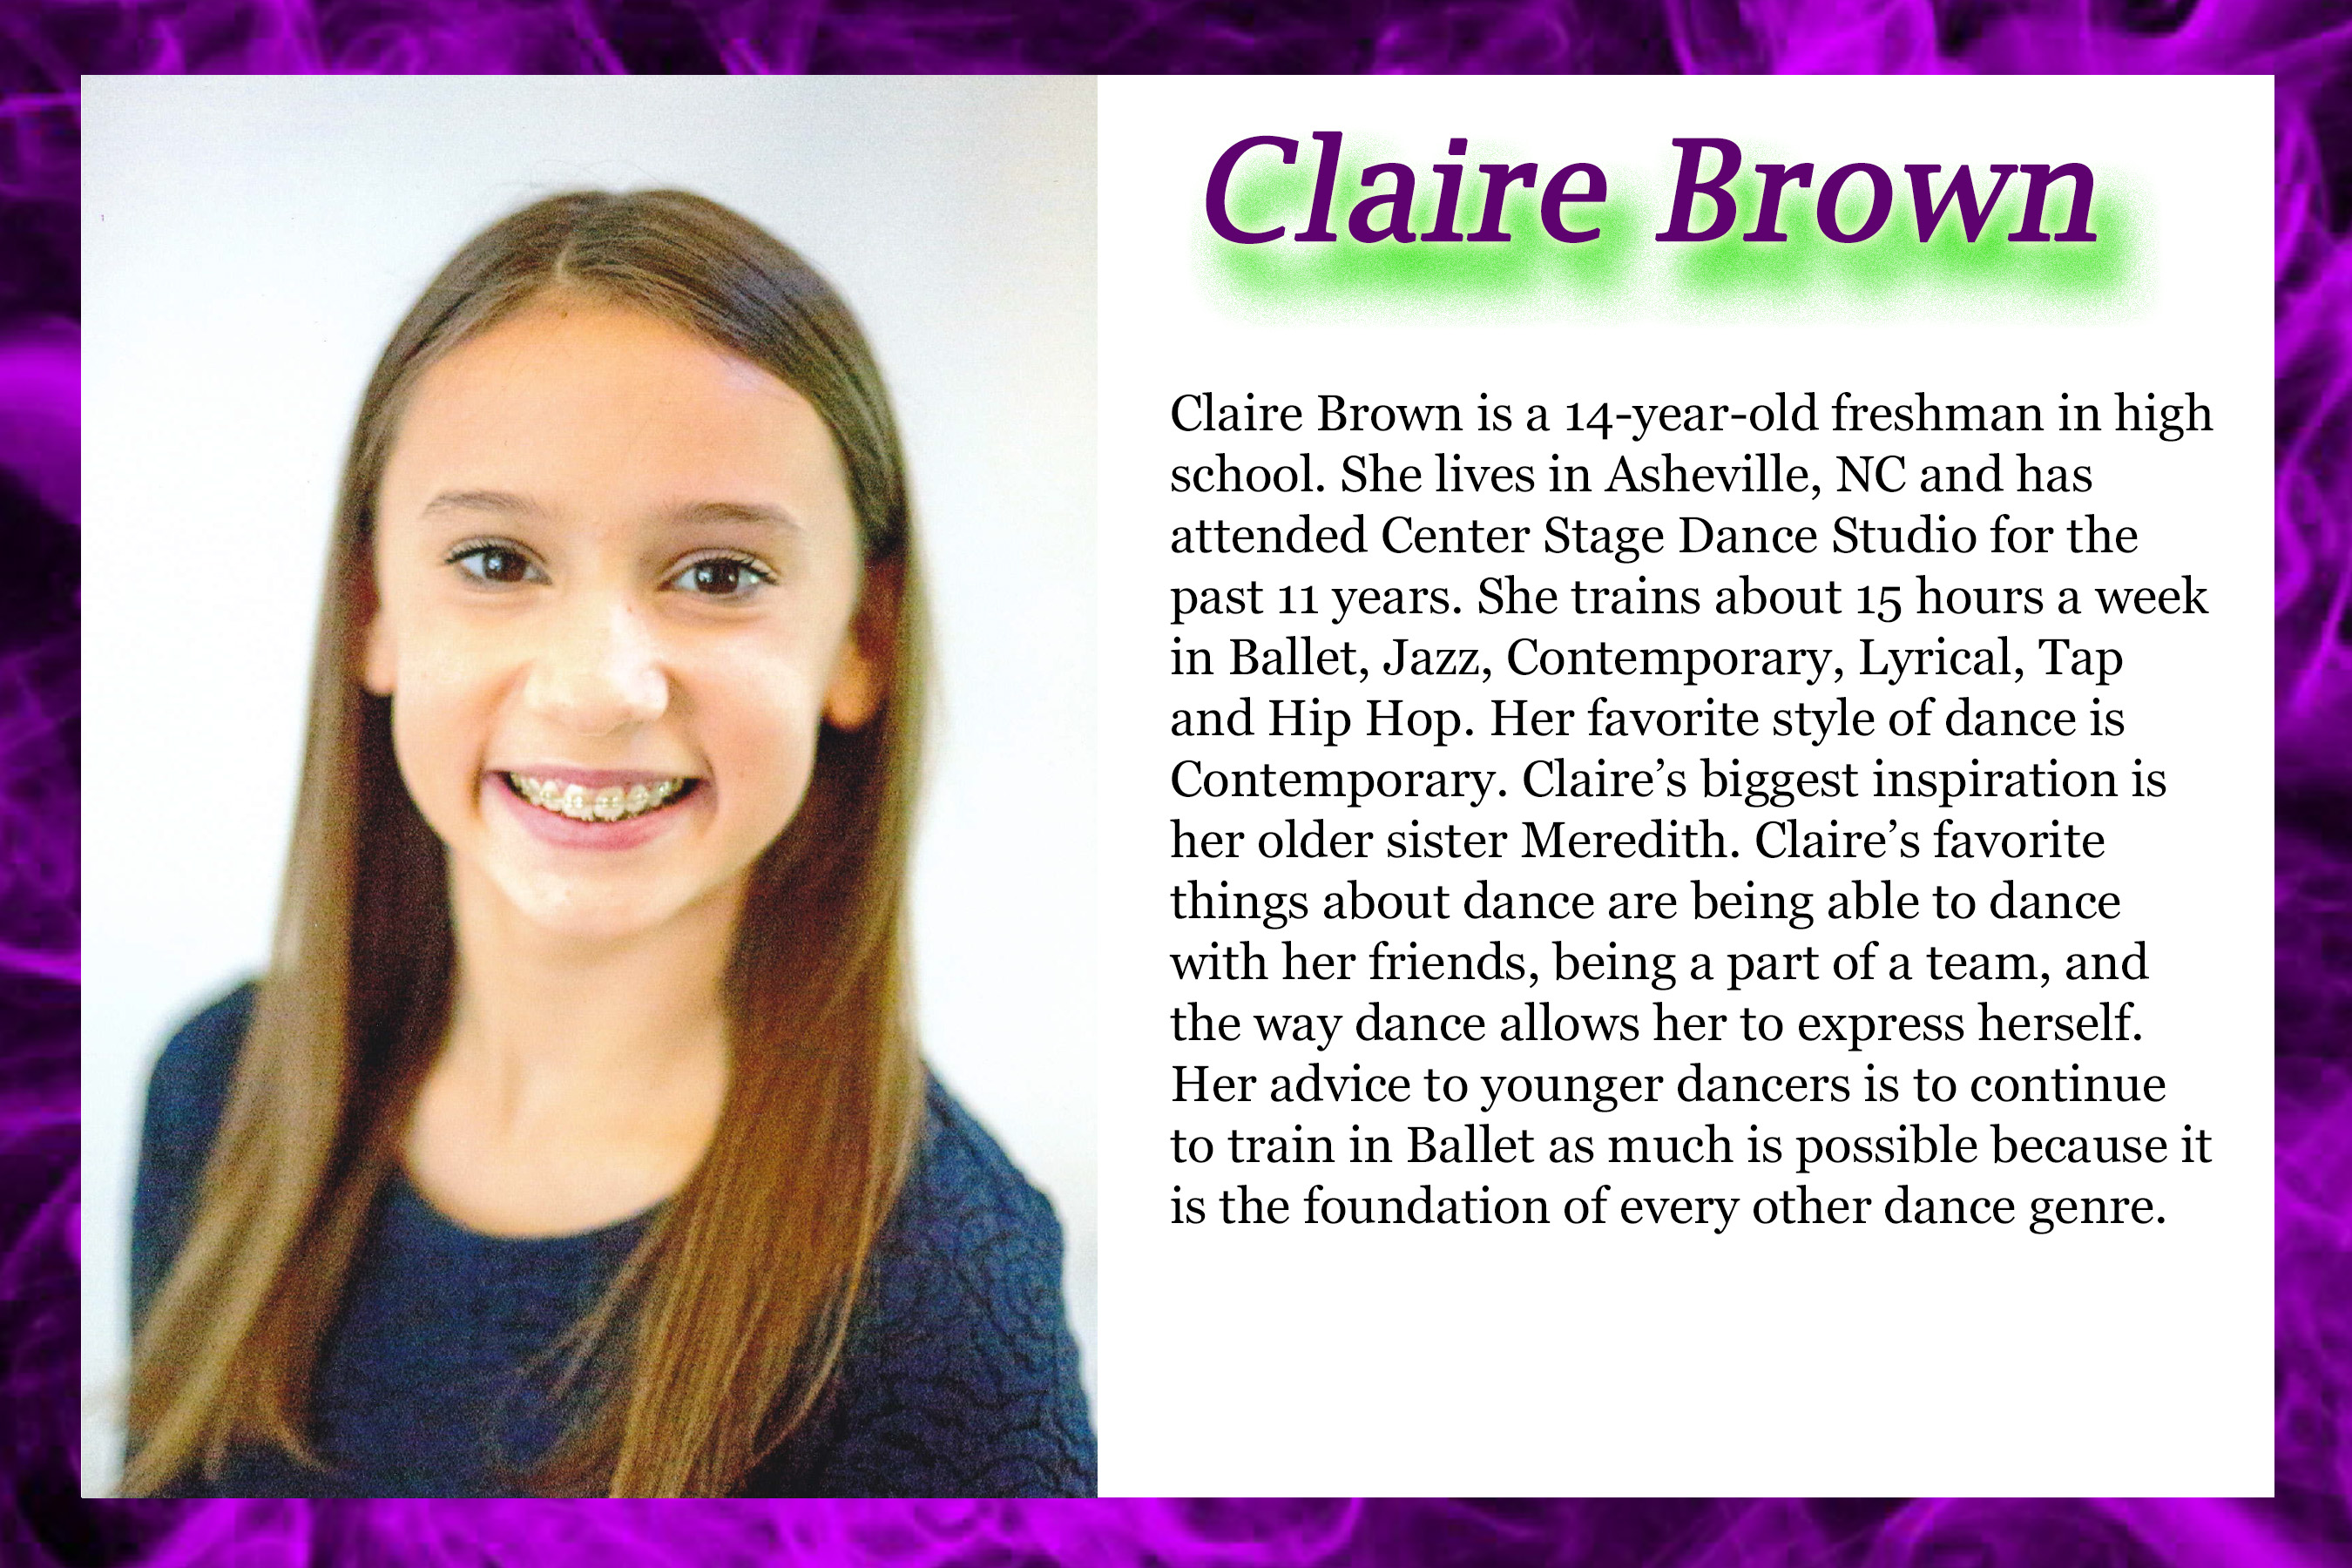 Claire Brown